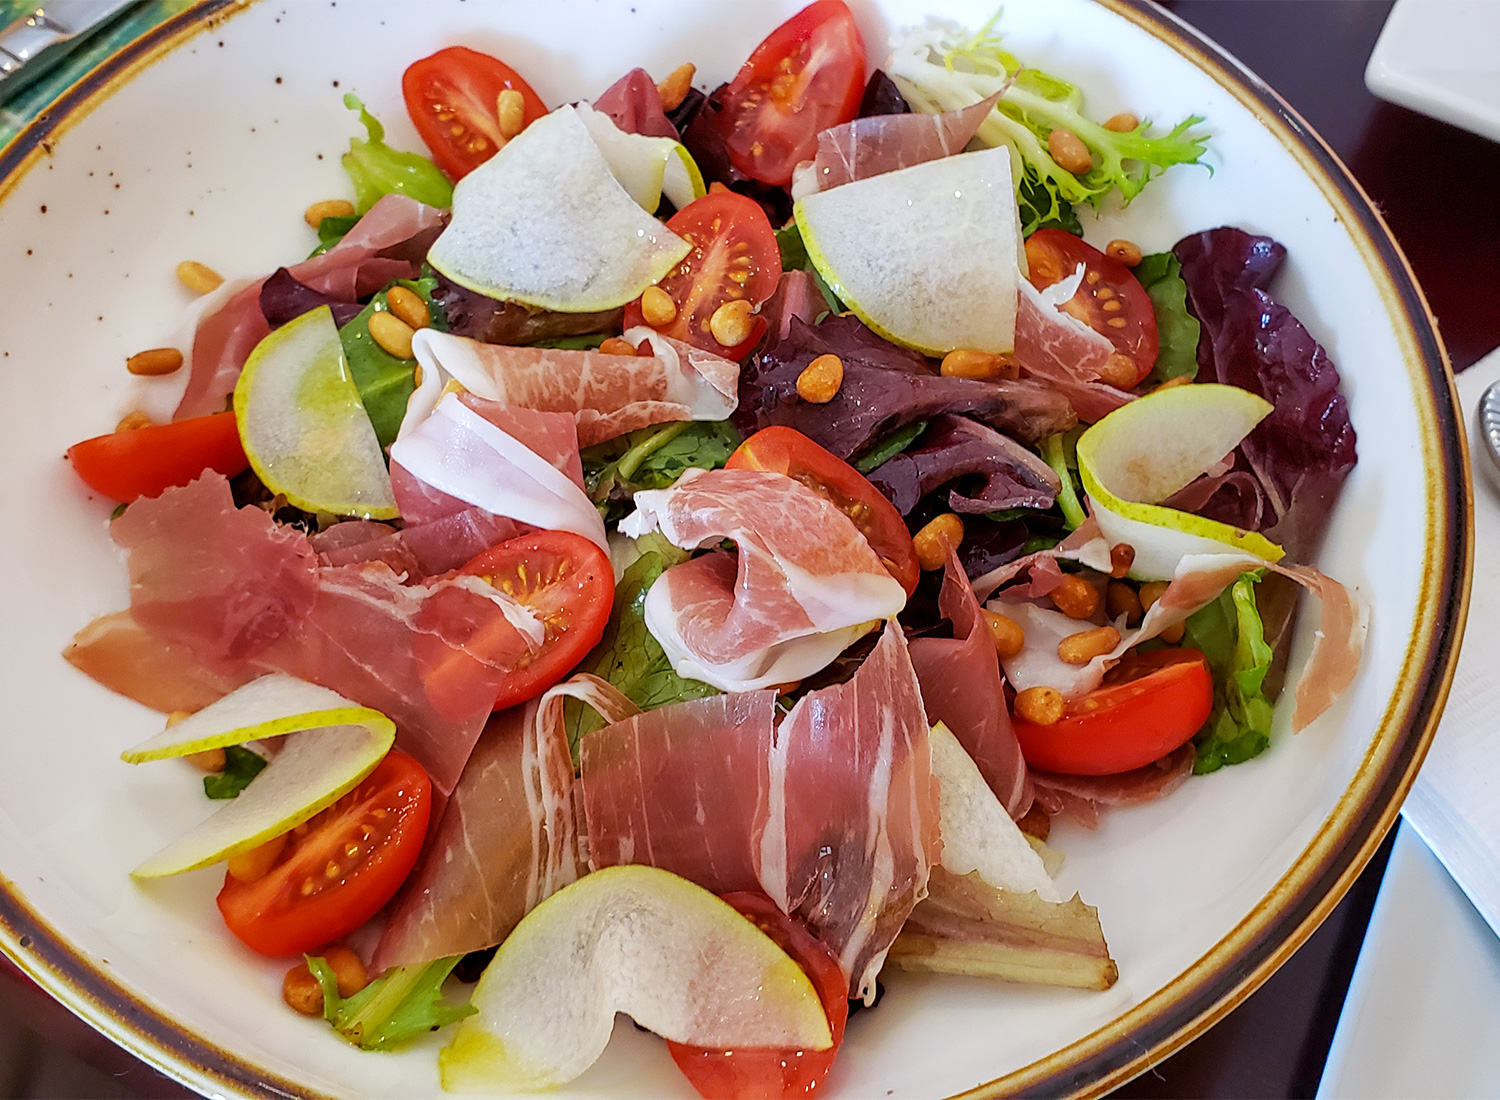 Salad with pear, prosciutto and tomatoes at Creperie Chez Solange in Larkfield. Heather Irwin/PD